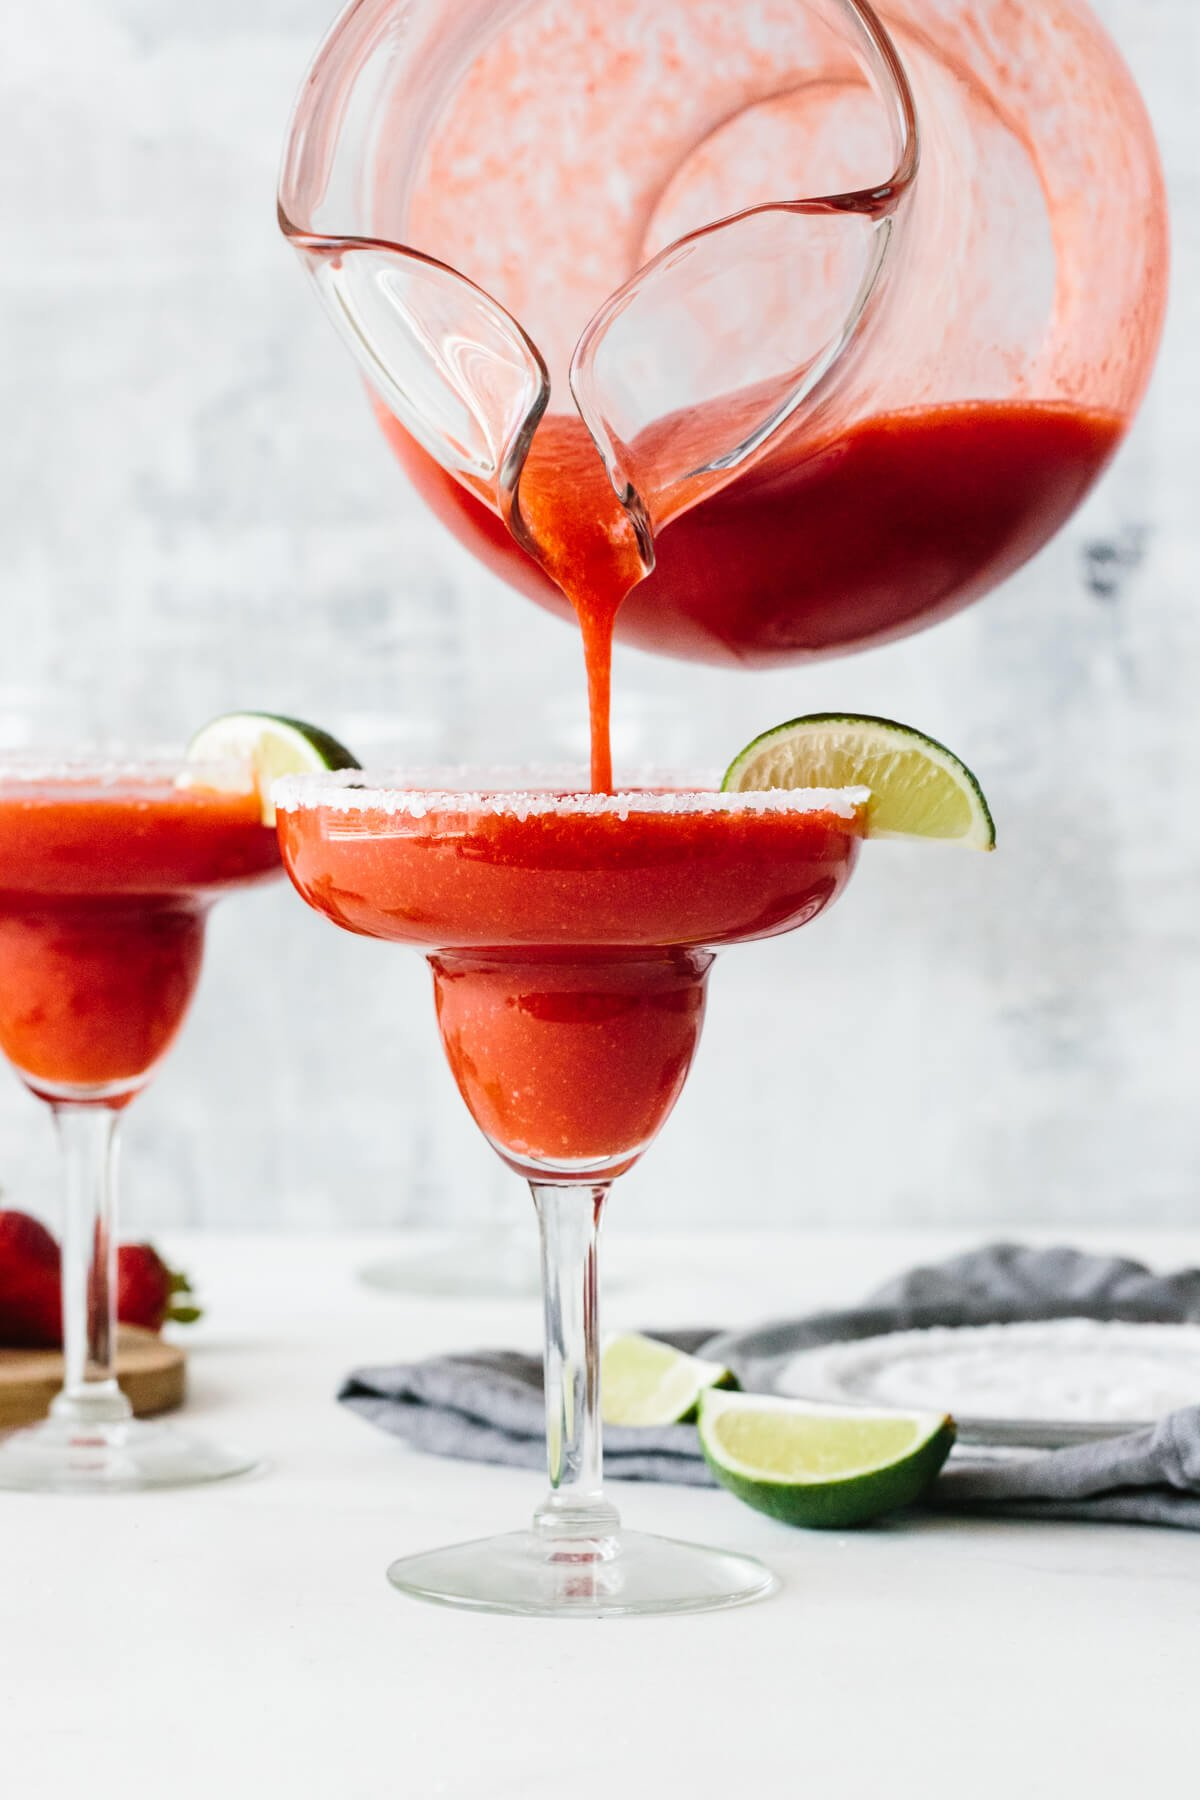 Pouring strawberry margarita into a glass.